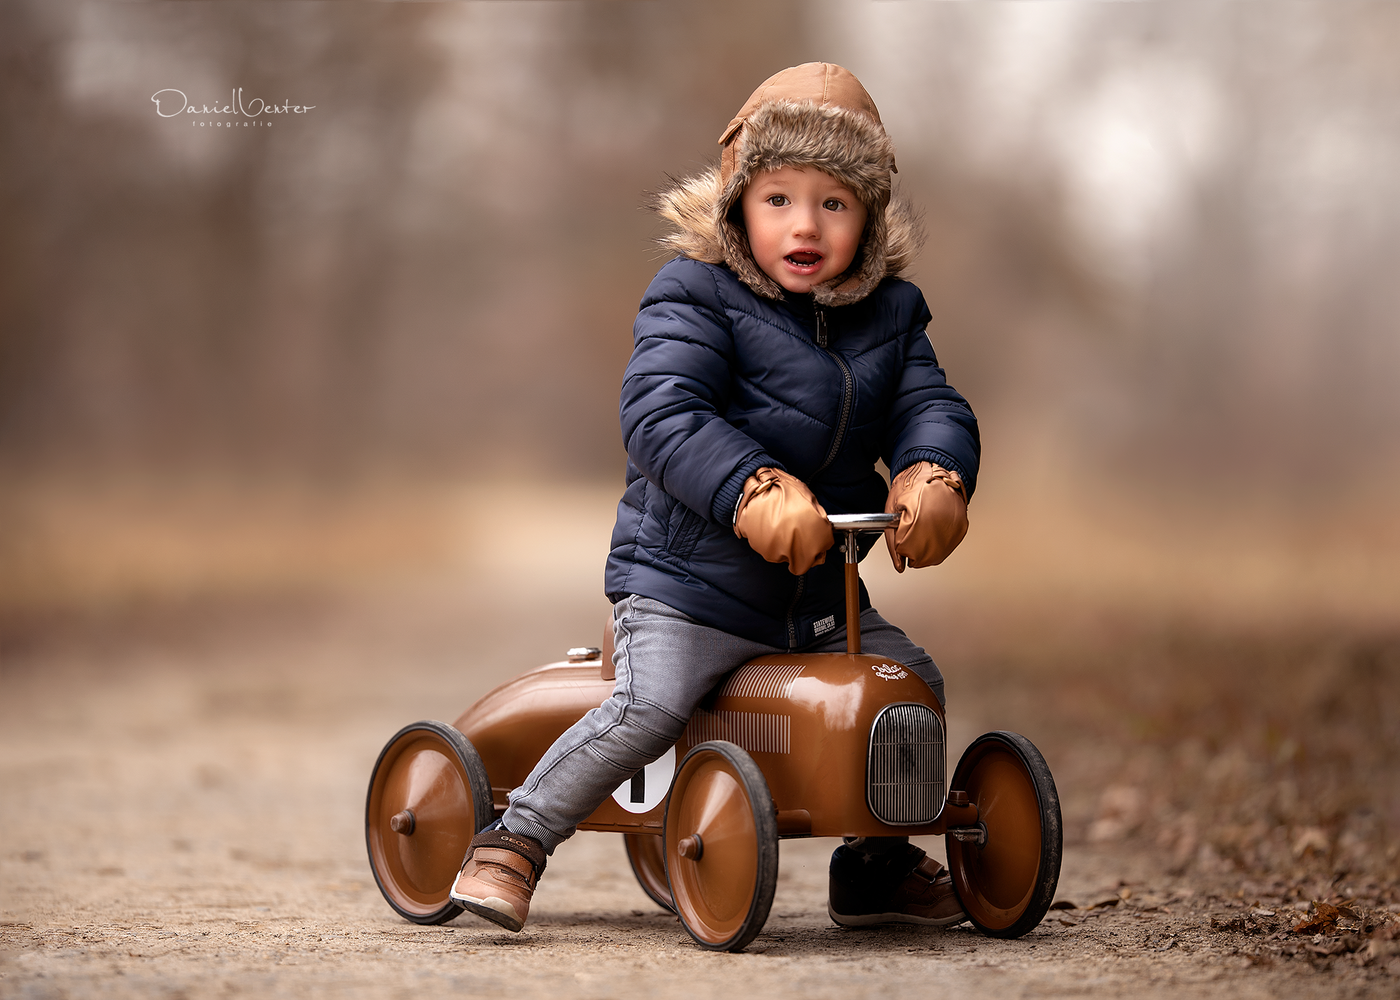 Little Racer by Daniel Venter